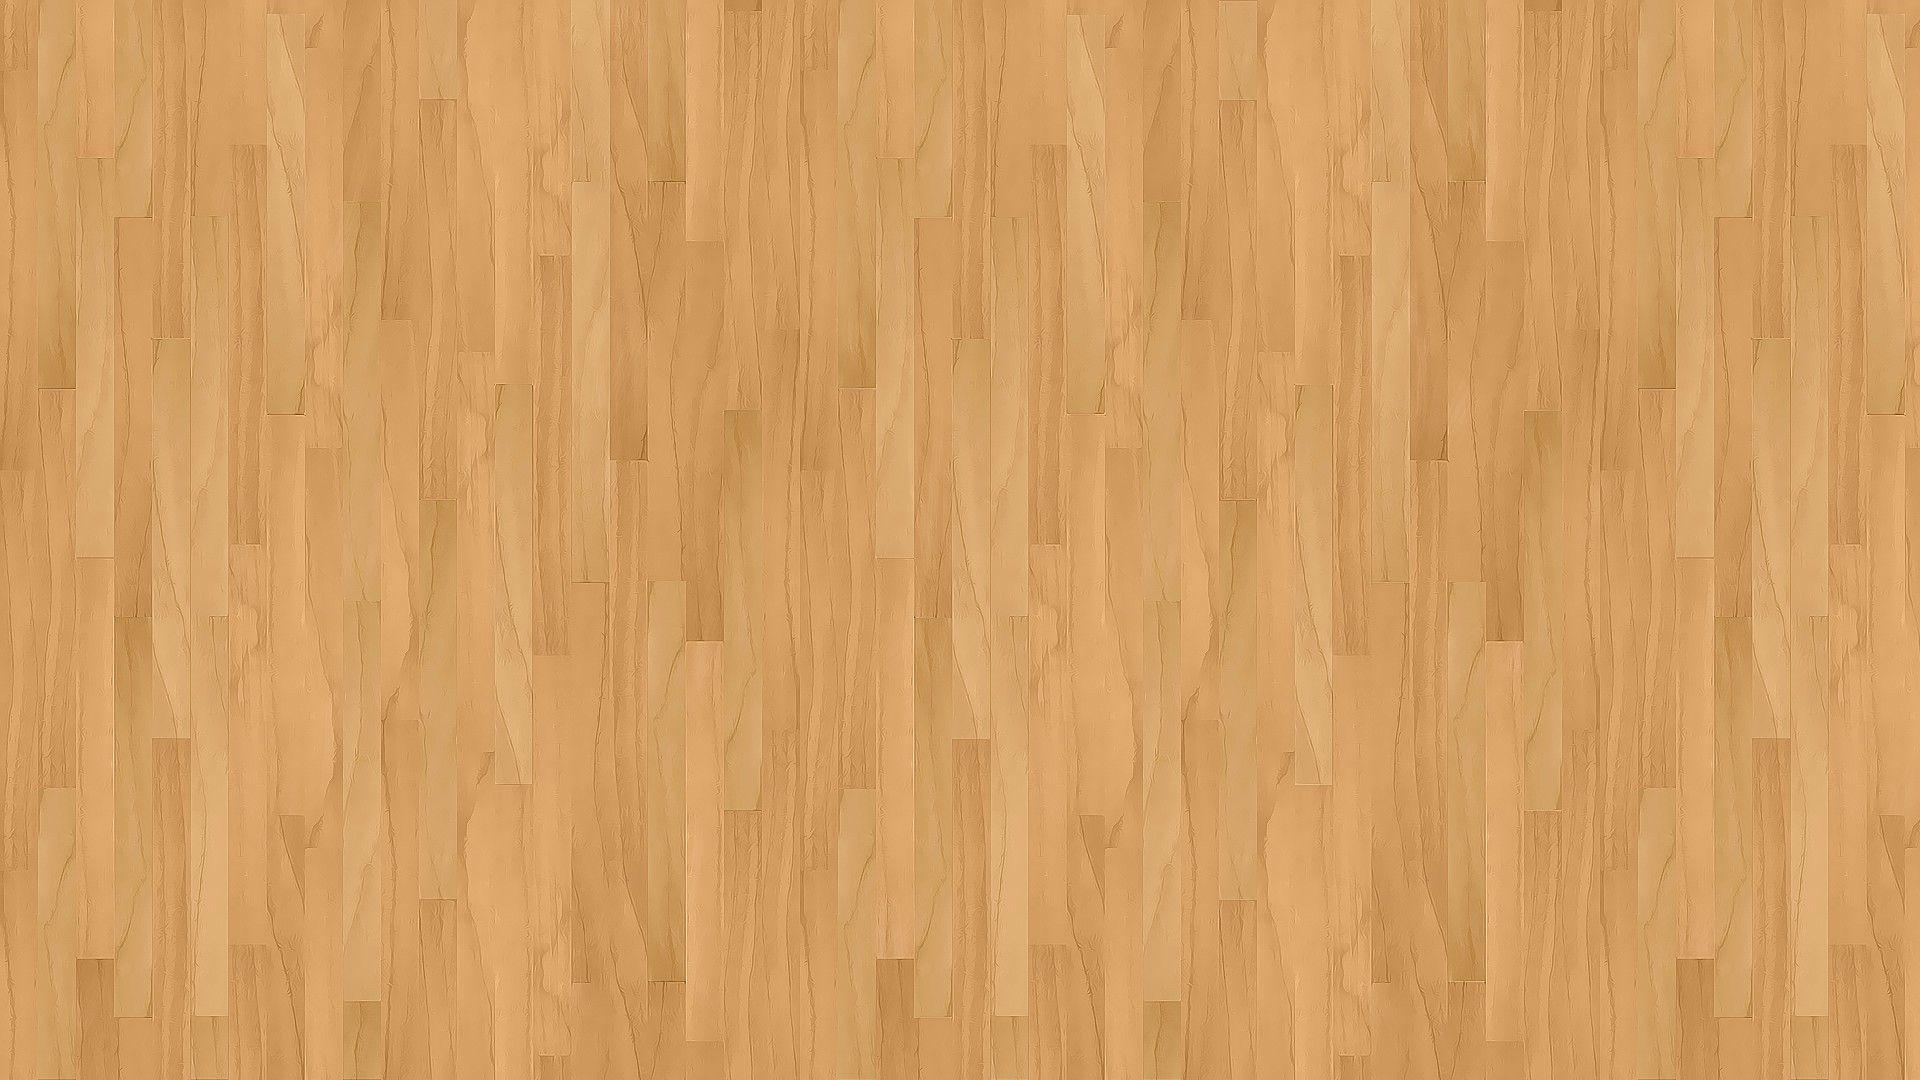 Wood Panelling Wallpaper 52315 Free Desktop Wallpapers HD - Res ...